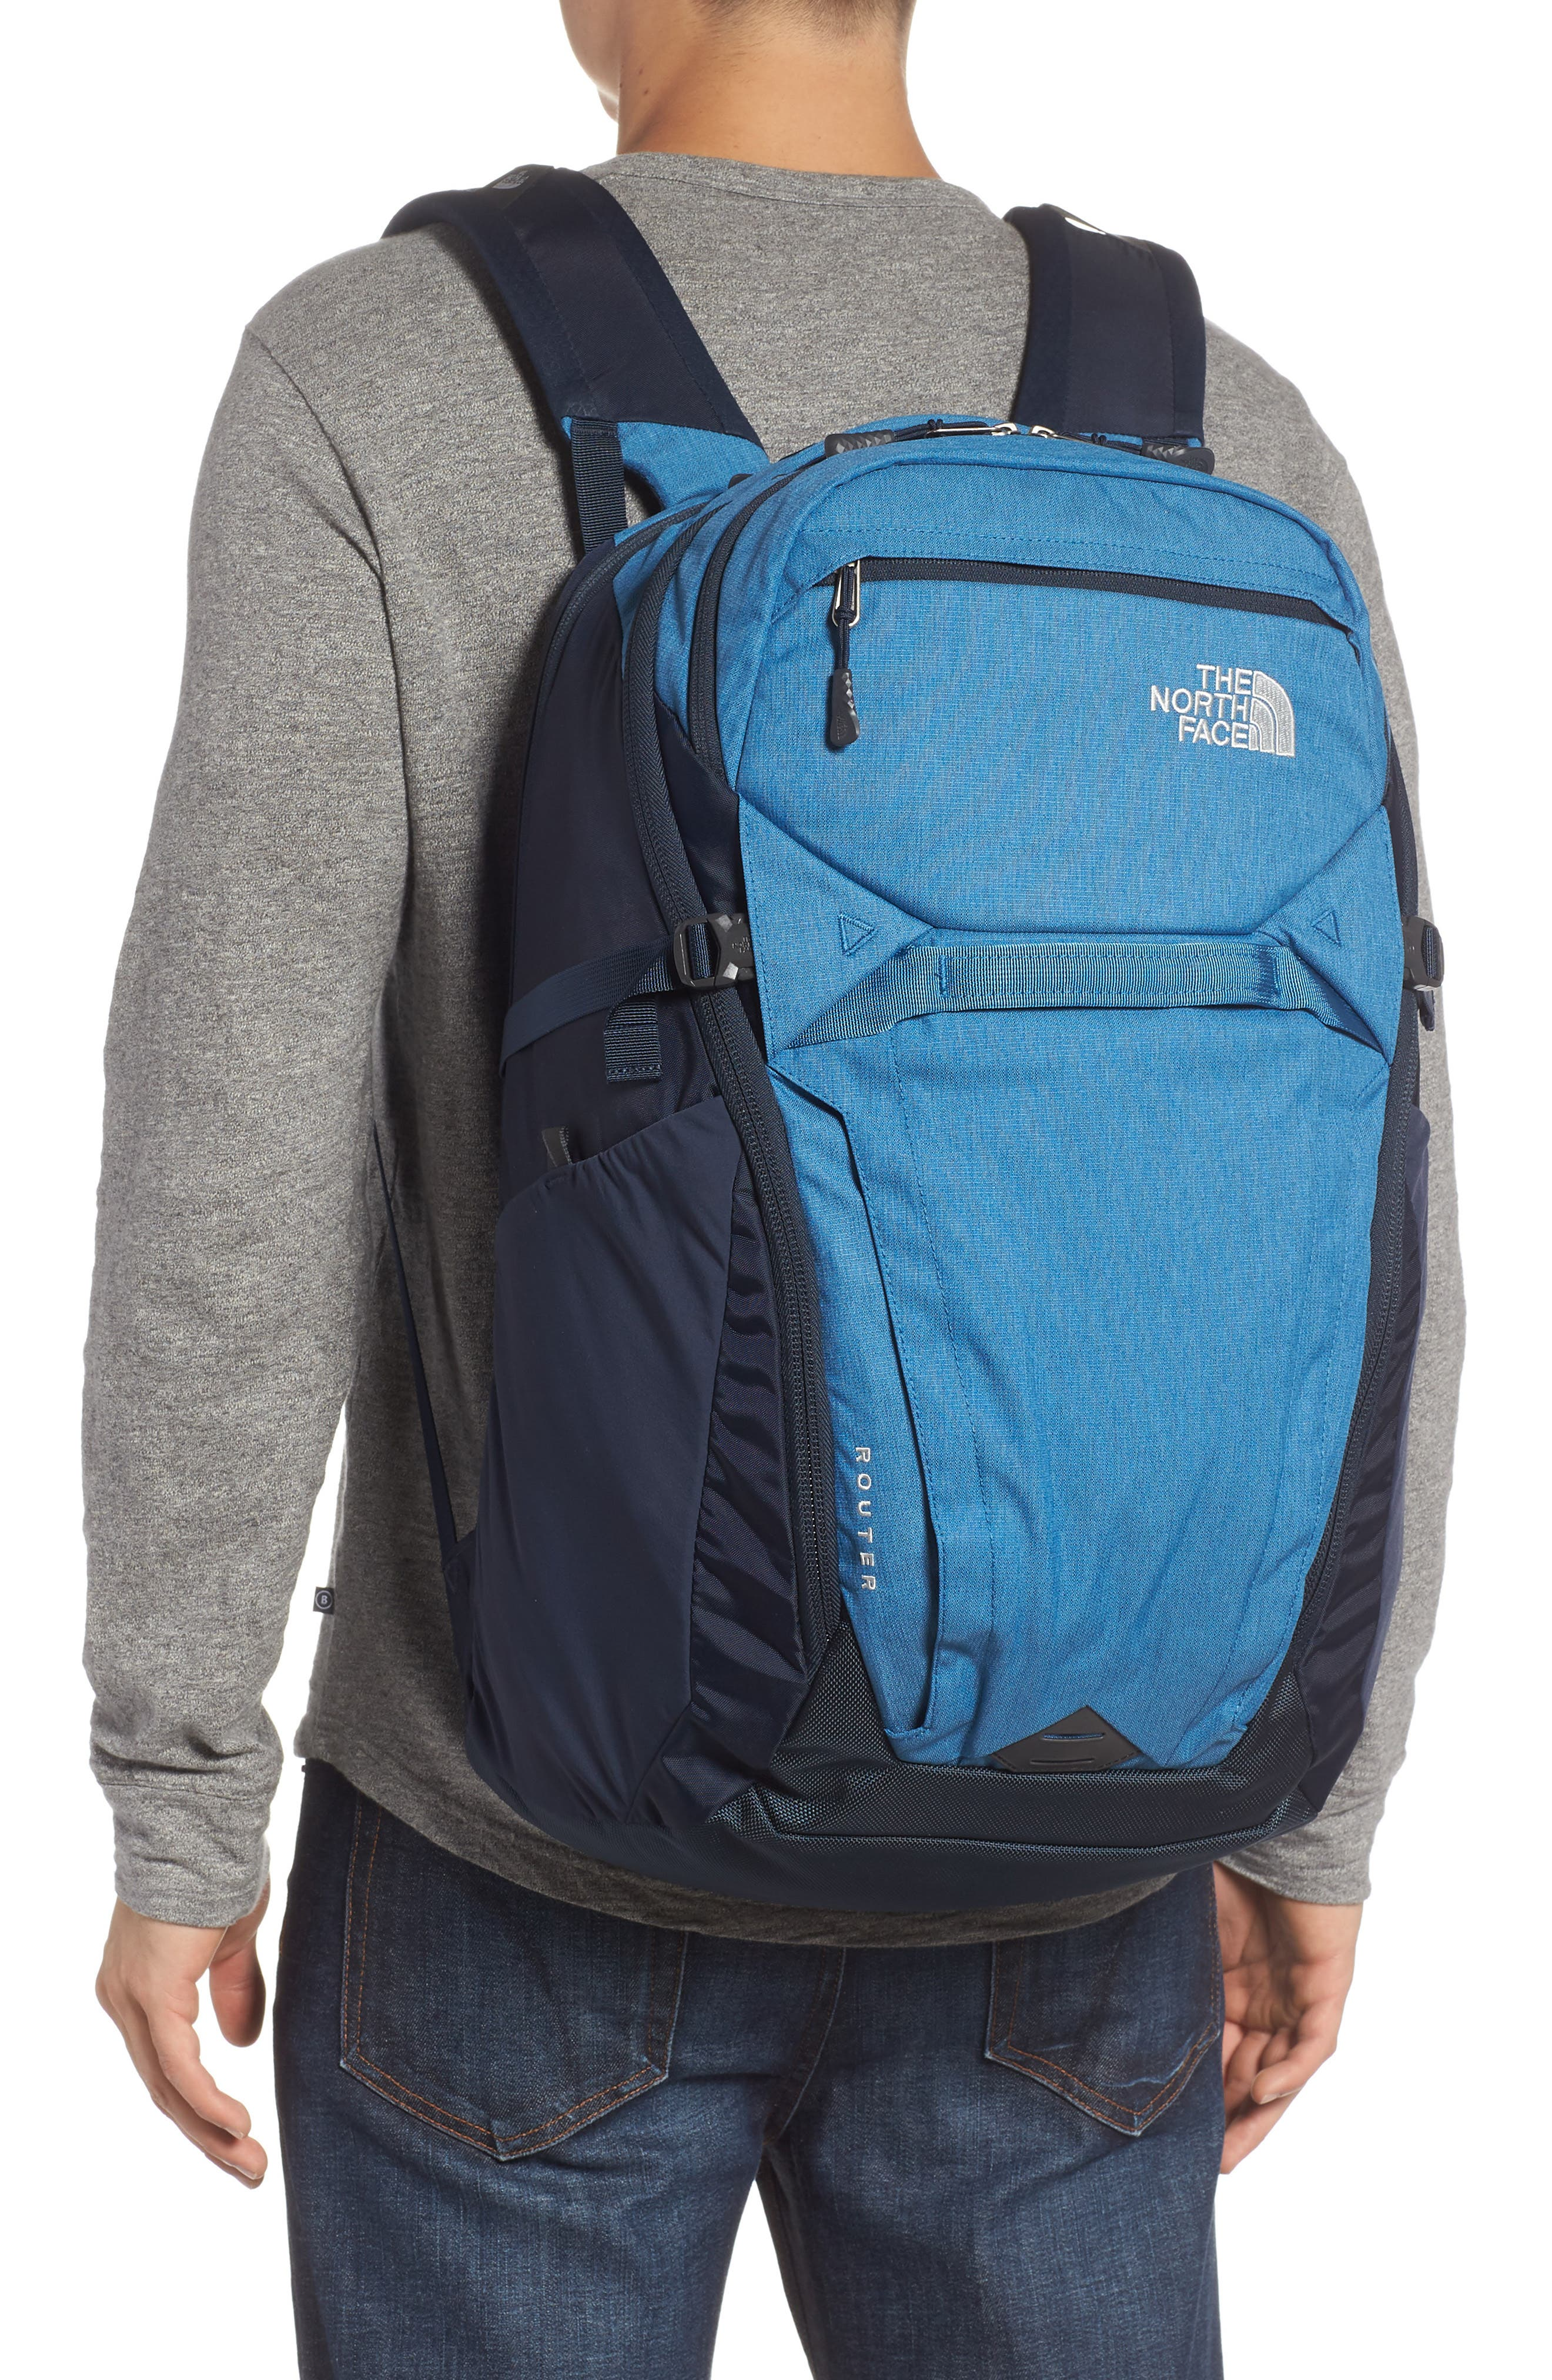 THE NORTH FACE,                             Router Backpack,                             Alternate thumbnail 2, color,                             DISH BLUE HEATHER/ URBAN NAVY